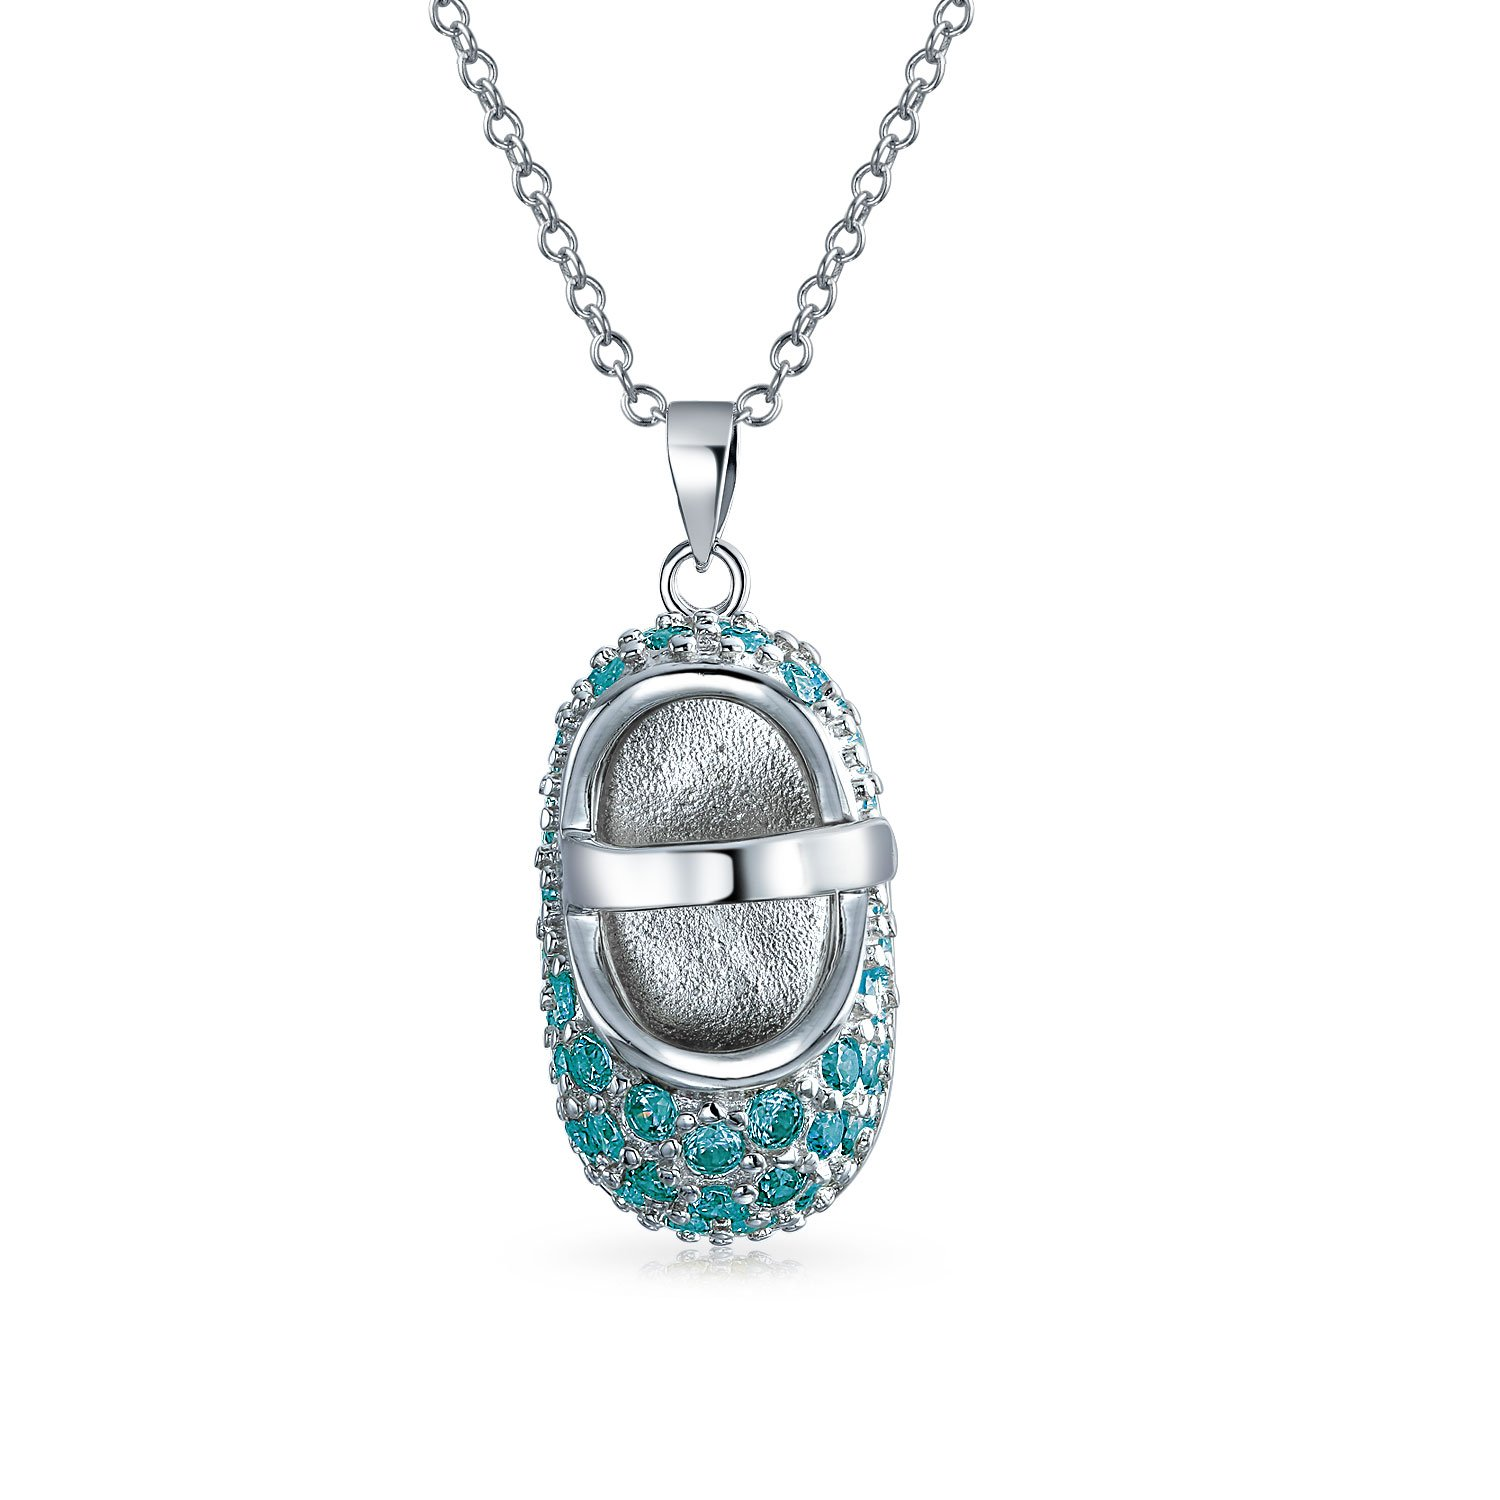 London Blue Pave CZ Baby Shoe Pendant Necklace For Women Charm Simulated Topaz Cubic Zirconia 925 Sterling Silver